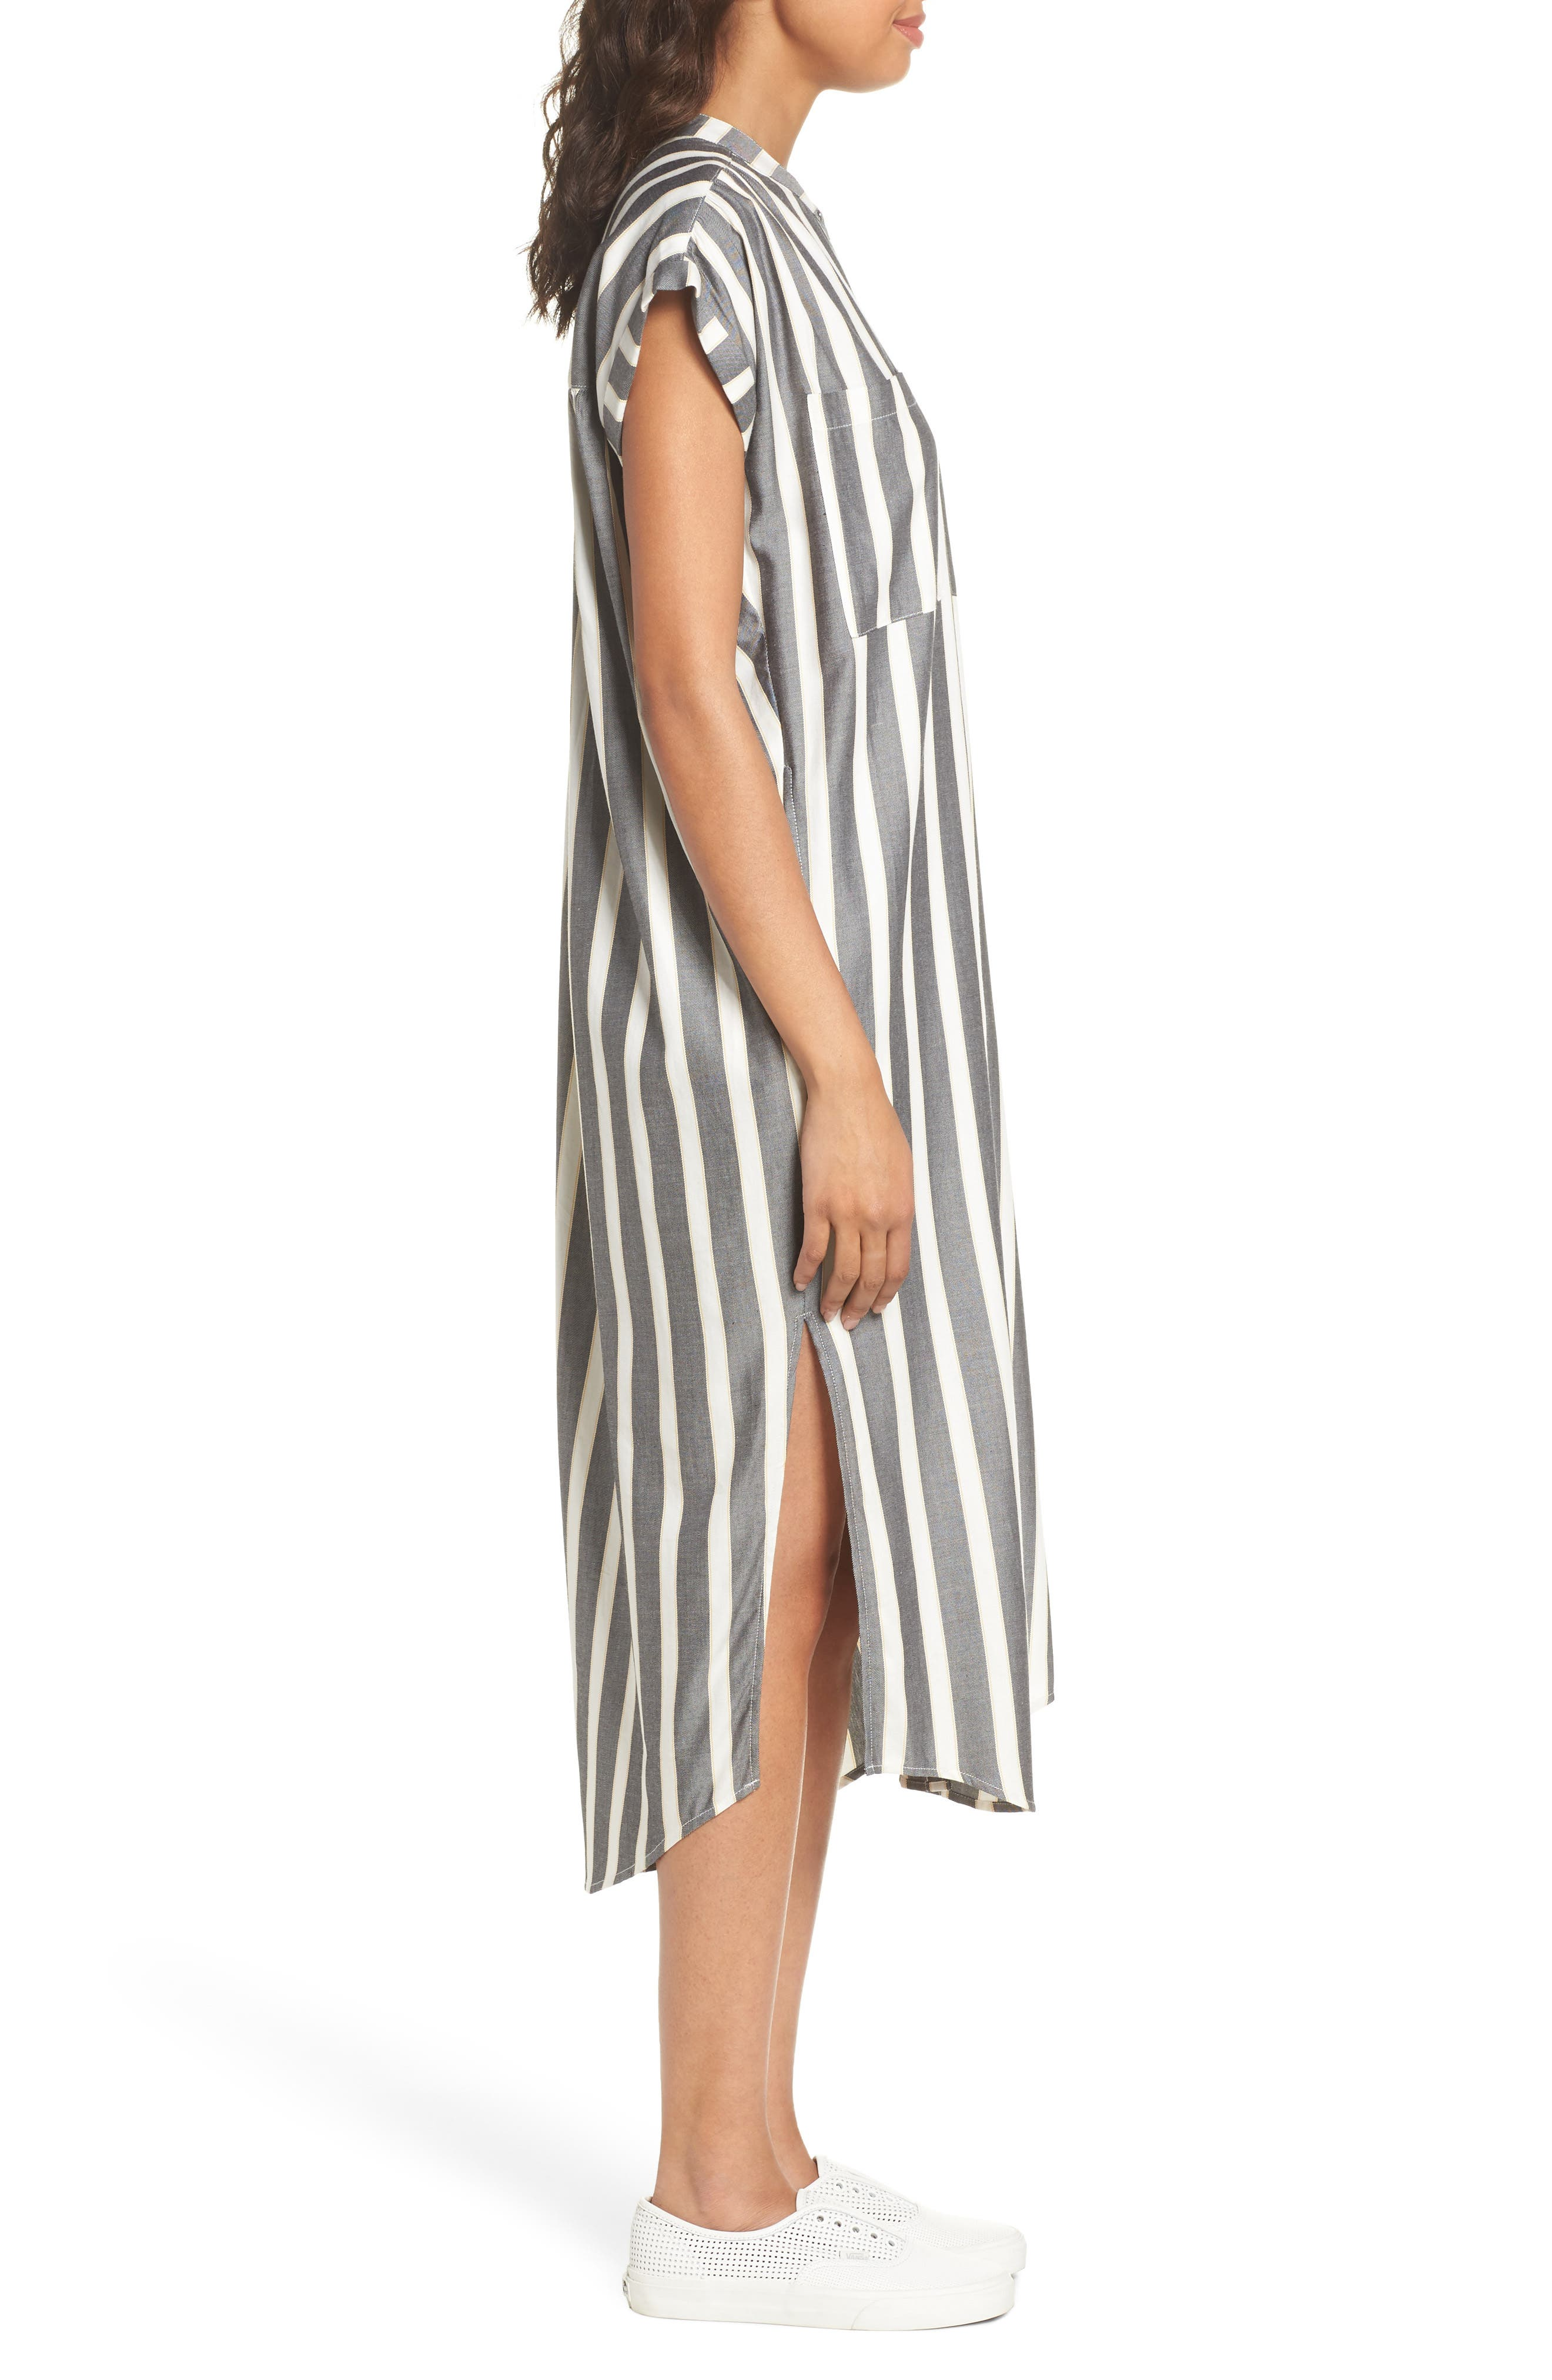 Haze Shirtdress,                             Alternate thumbnail 3, color,                             Black With Cream Stripe